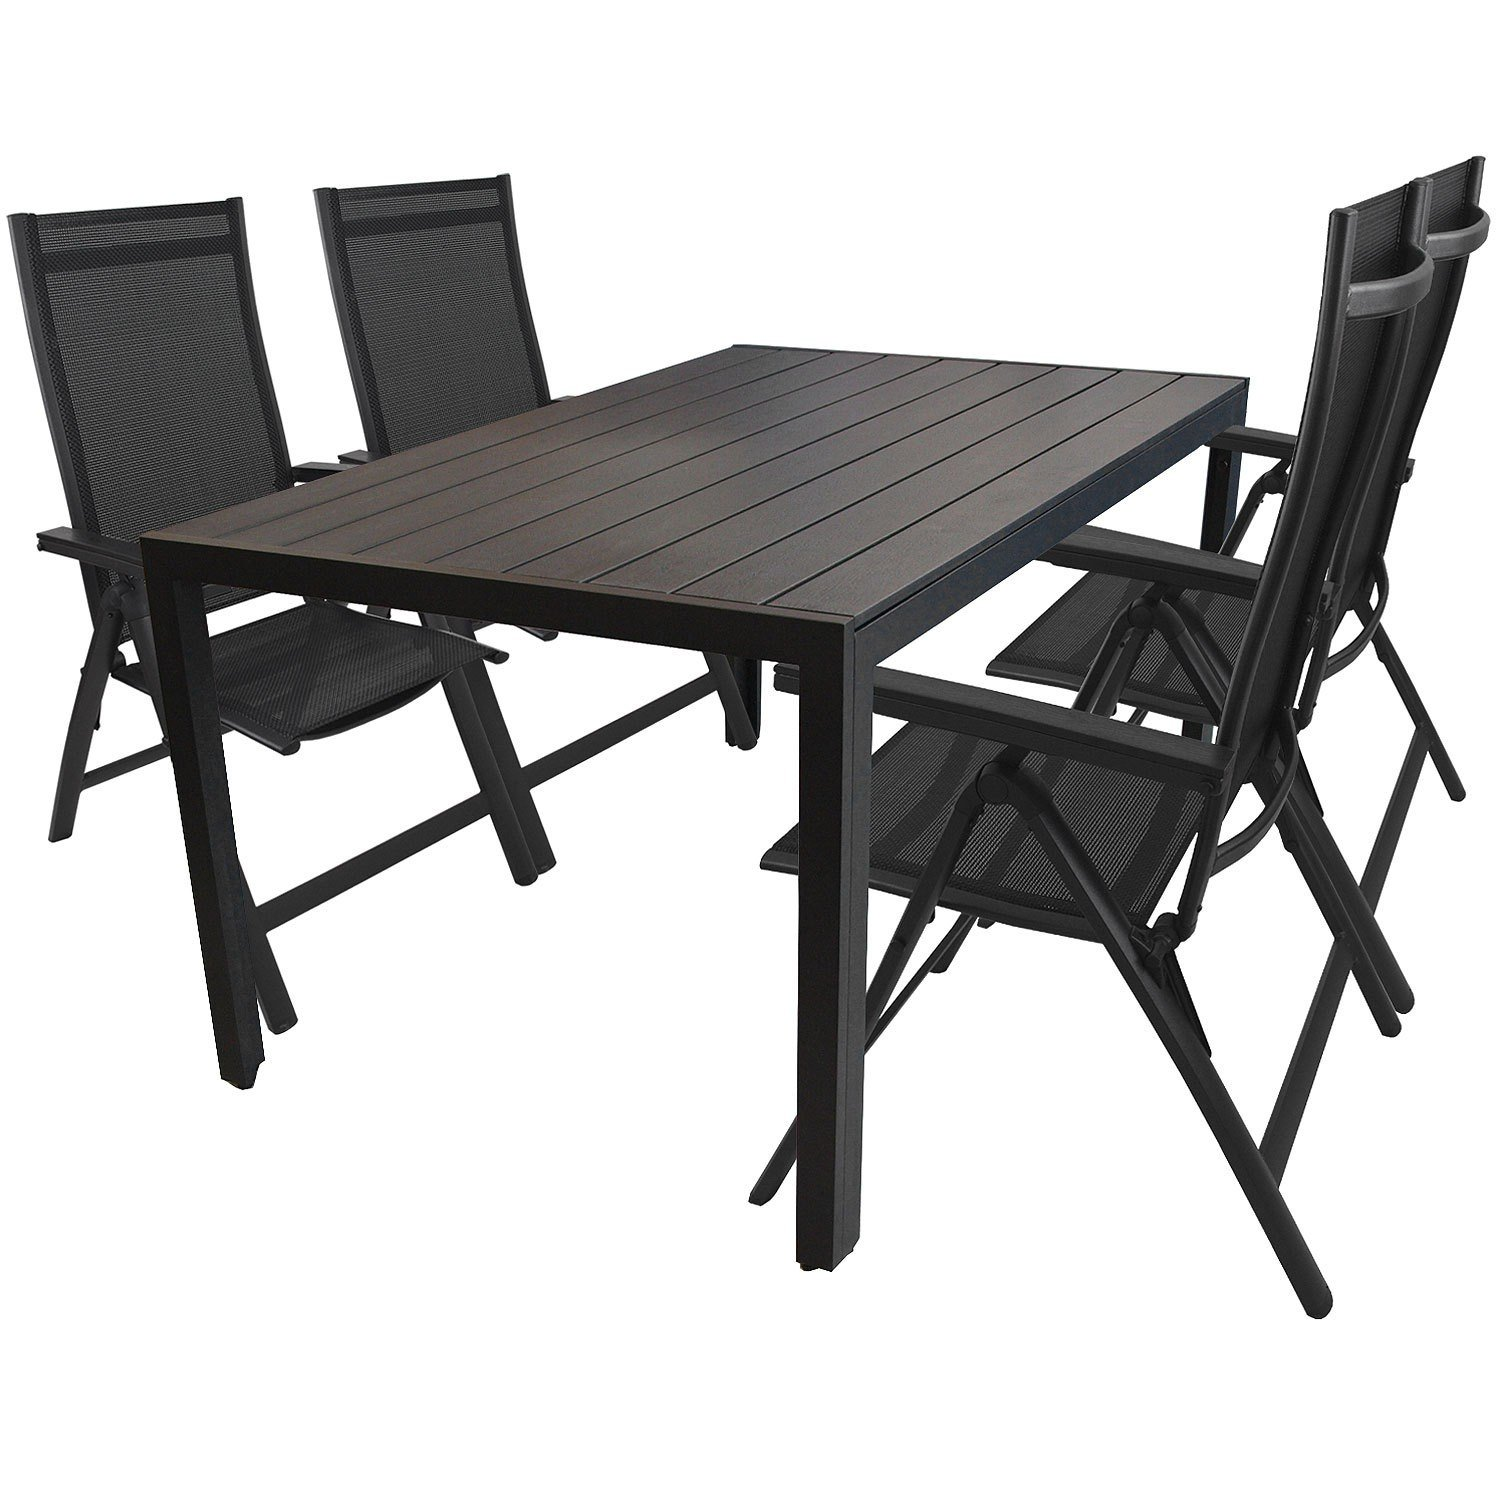 5tlg garnitur aluminiumtisch mit polywood tischplatte 150x90cm aluminium hochlehner mit 4x4. Black Bedroom Furniture Sets. Home Design Ideas